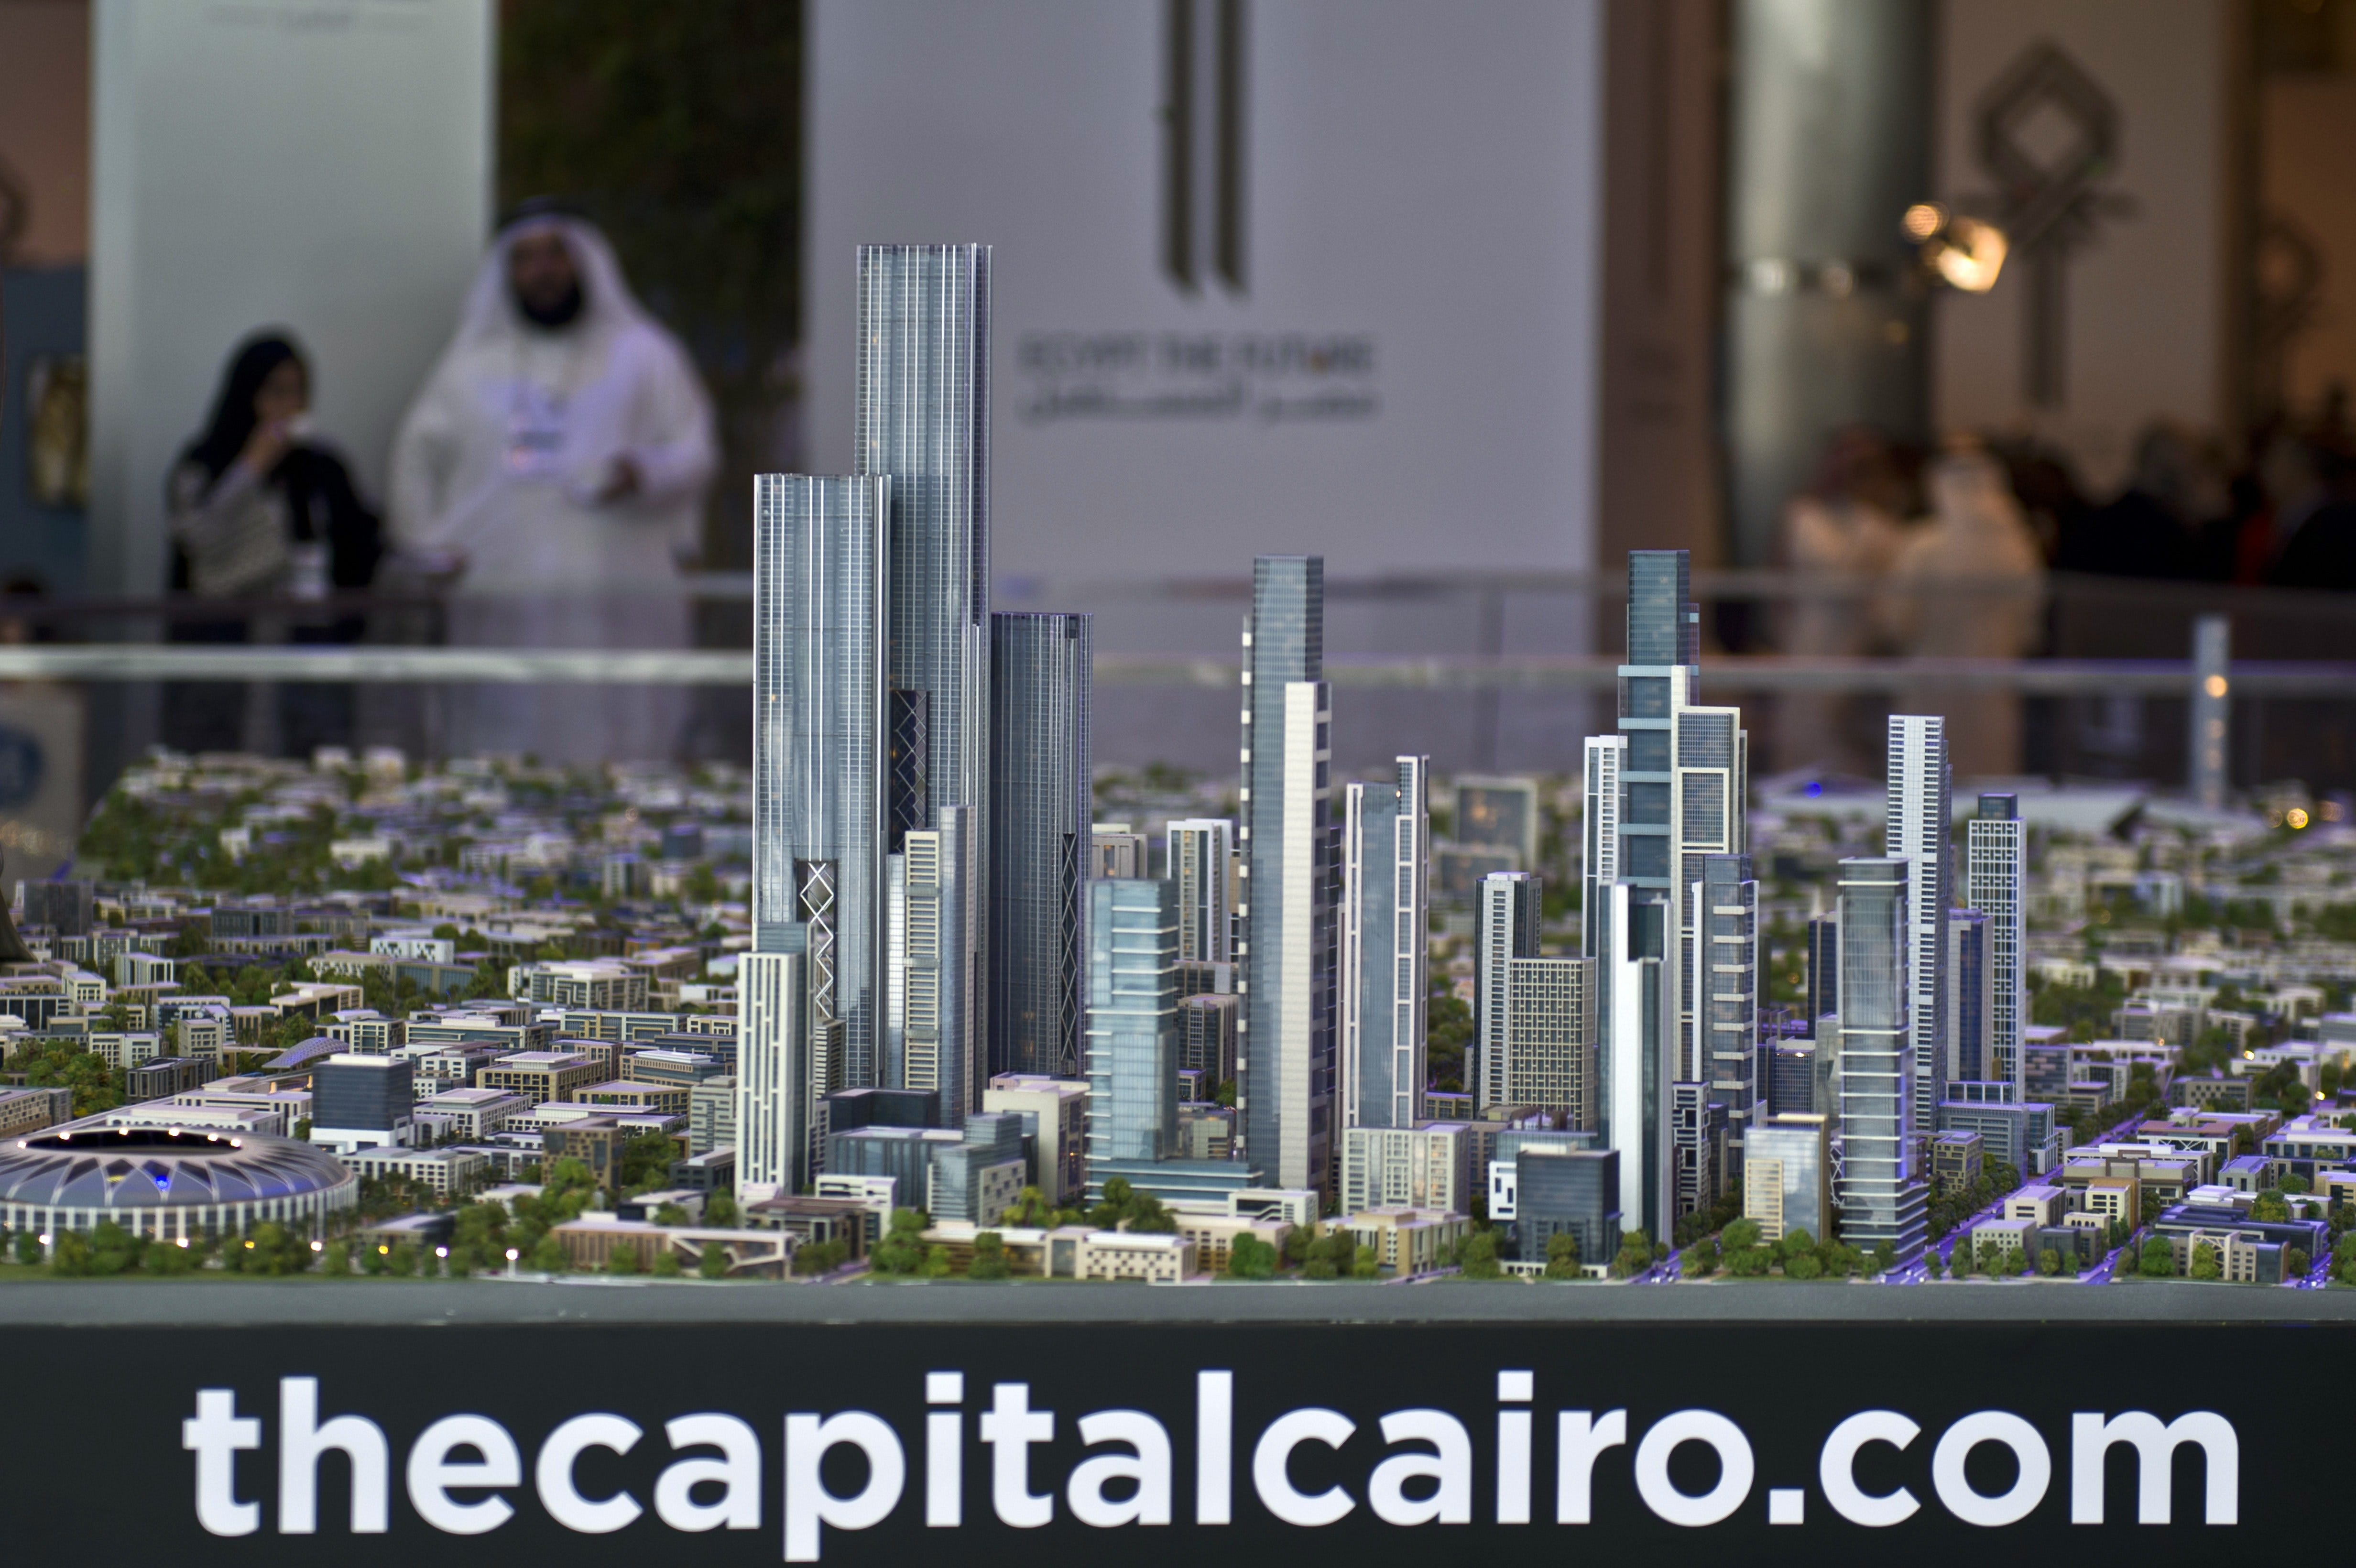 Egyptian real estate developers are planning a tourist resort for 1.7b billion on the Mediterranean coast 11